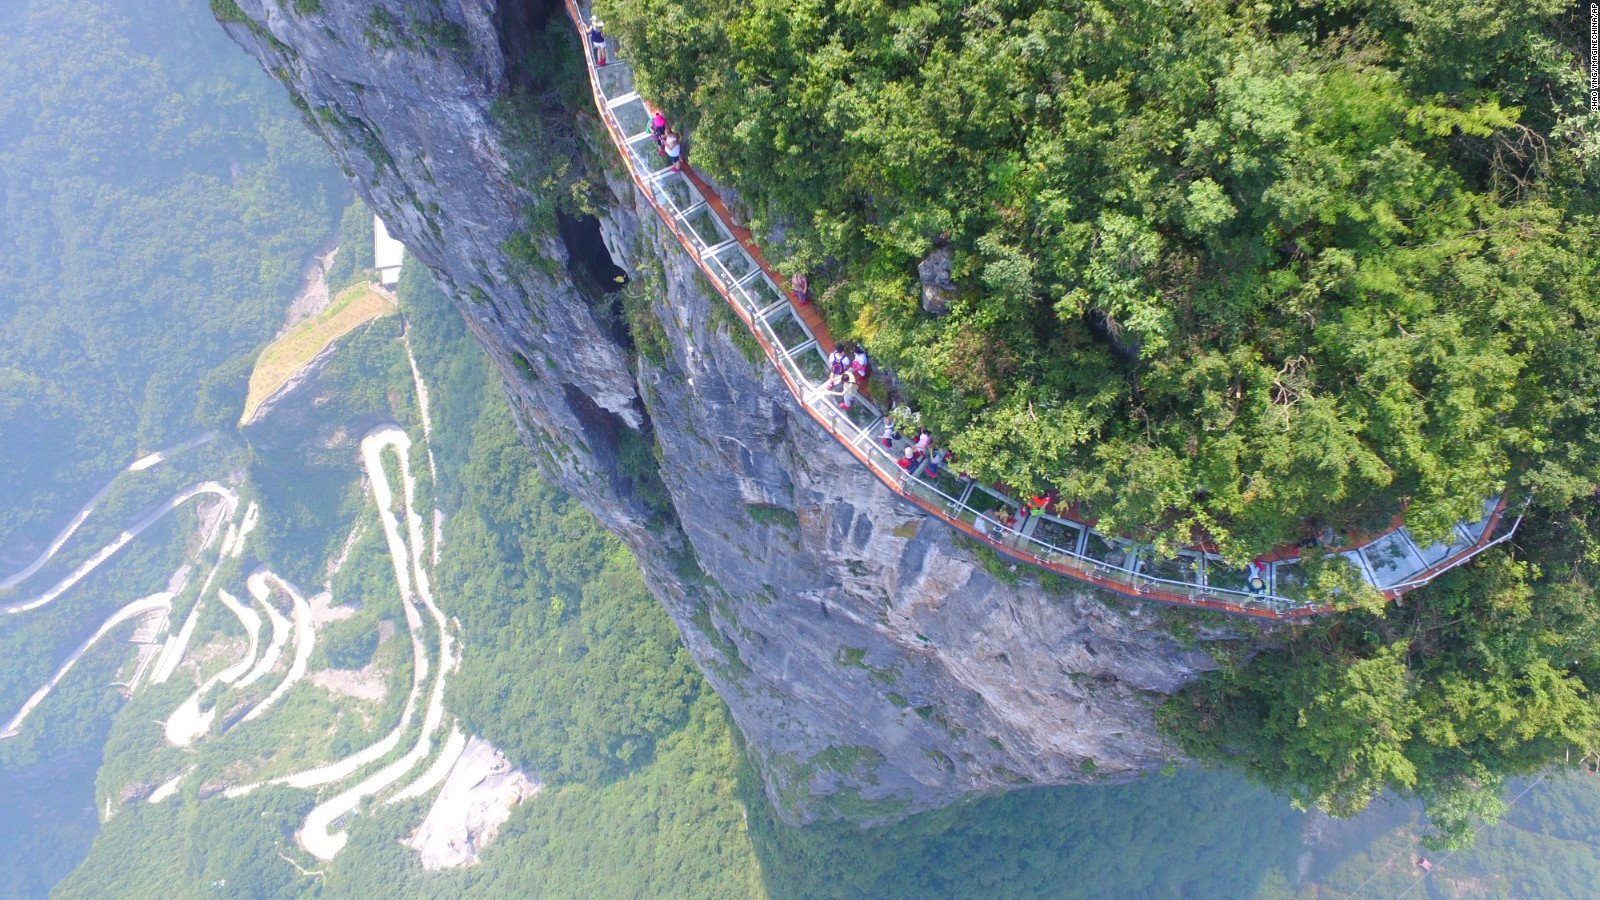 Chinas Cliffclinging Glass Skywalk Opens To Public CNN Travel - China opens worlds longest skywalk